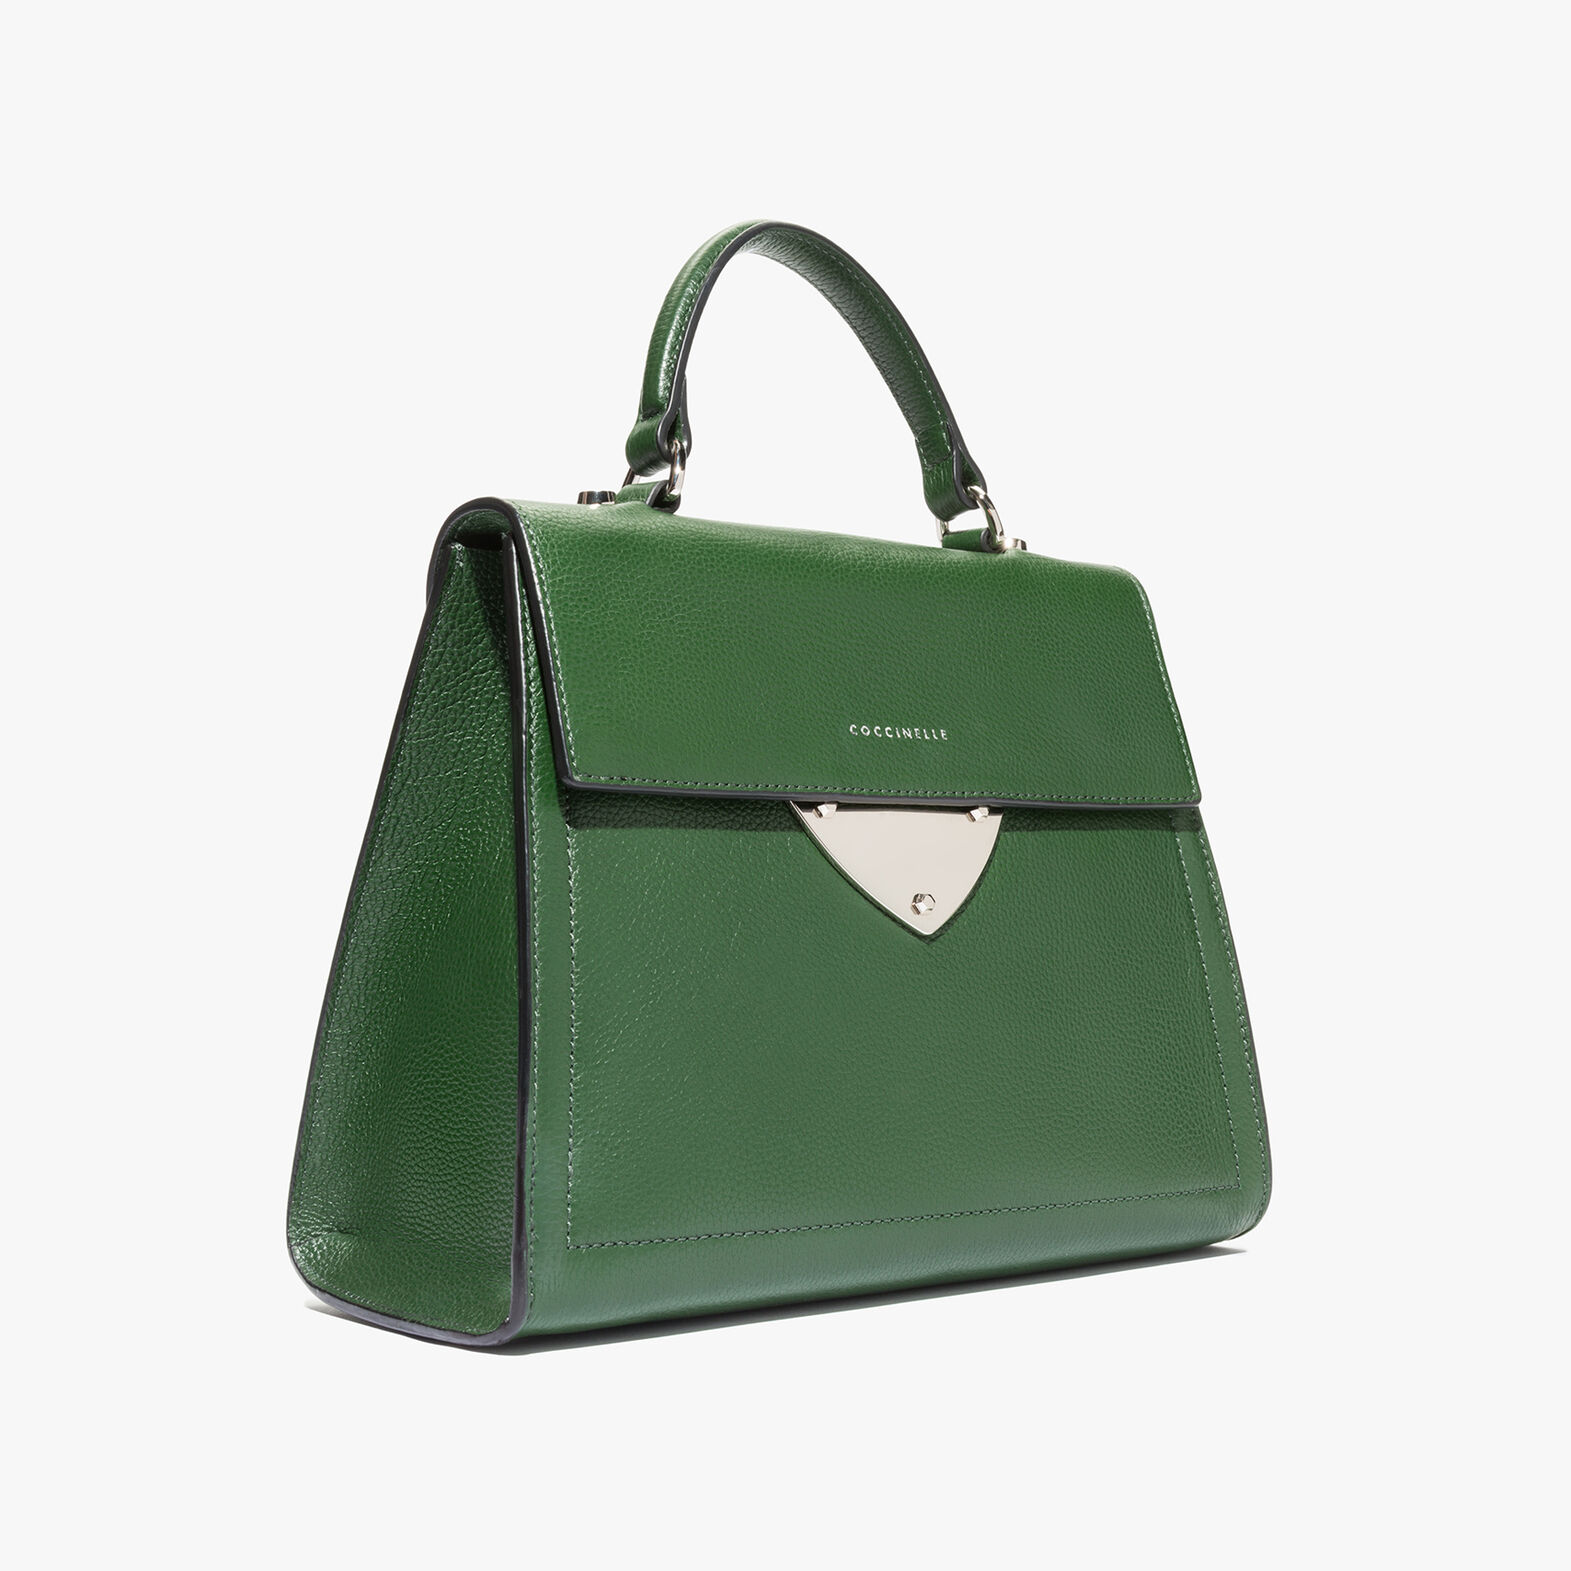 B14 leather handbag